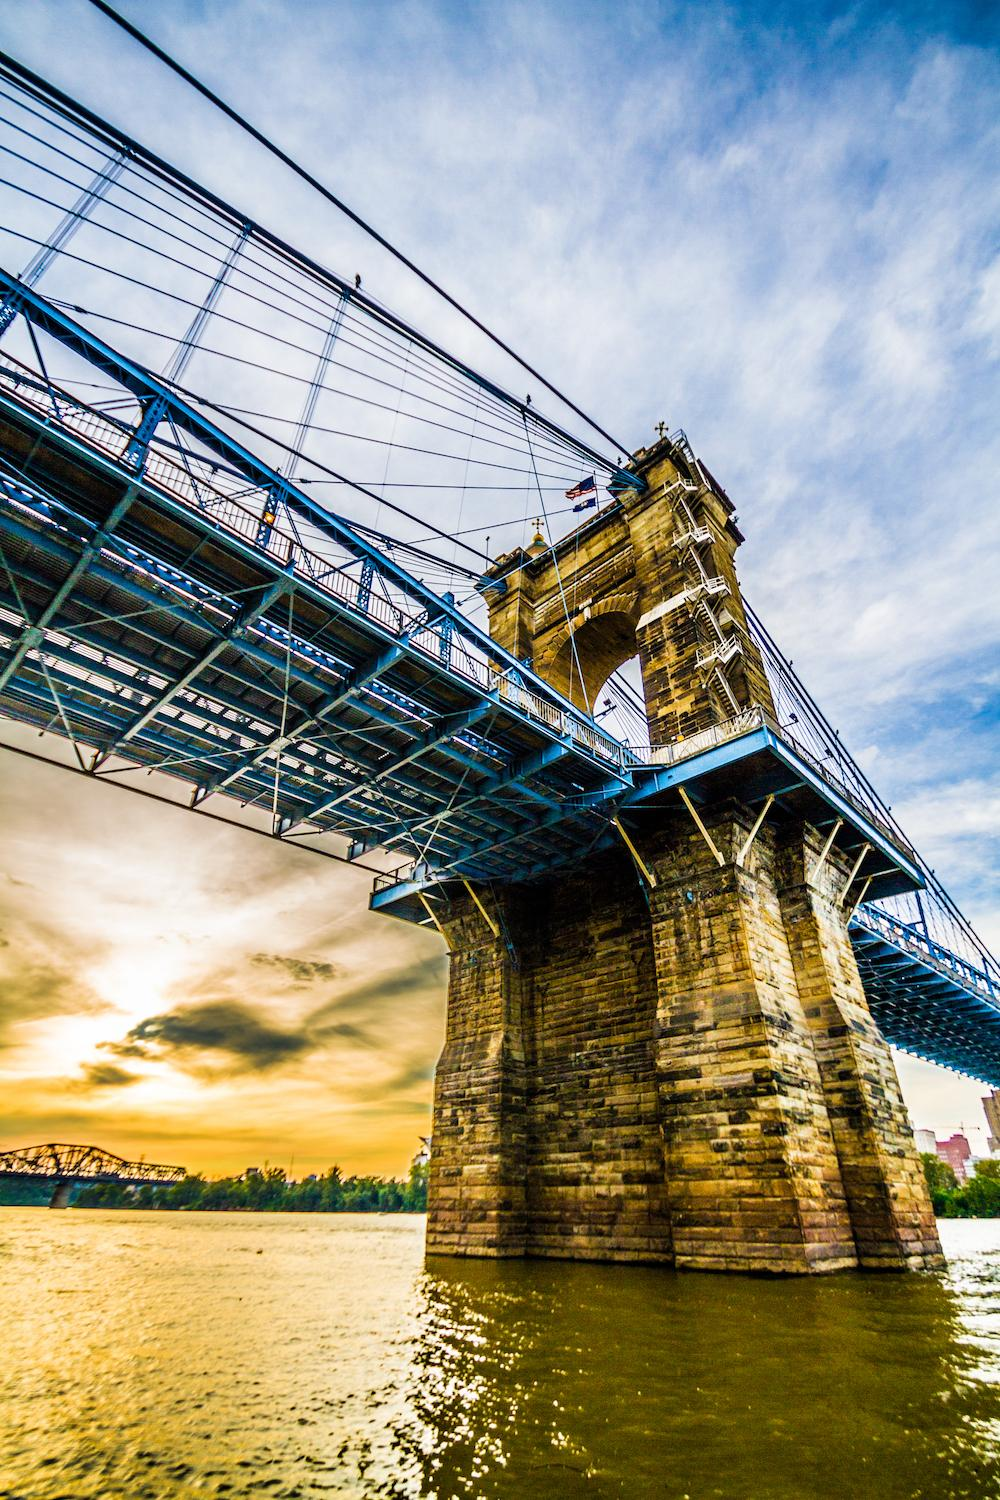 Sunset on the Roebling Bridge / Image: Amy Elisabeth Spasoff / Published: 12.19.16